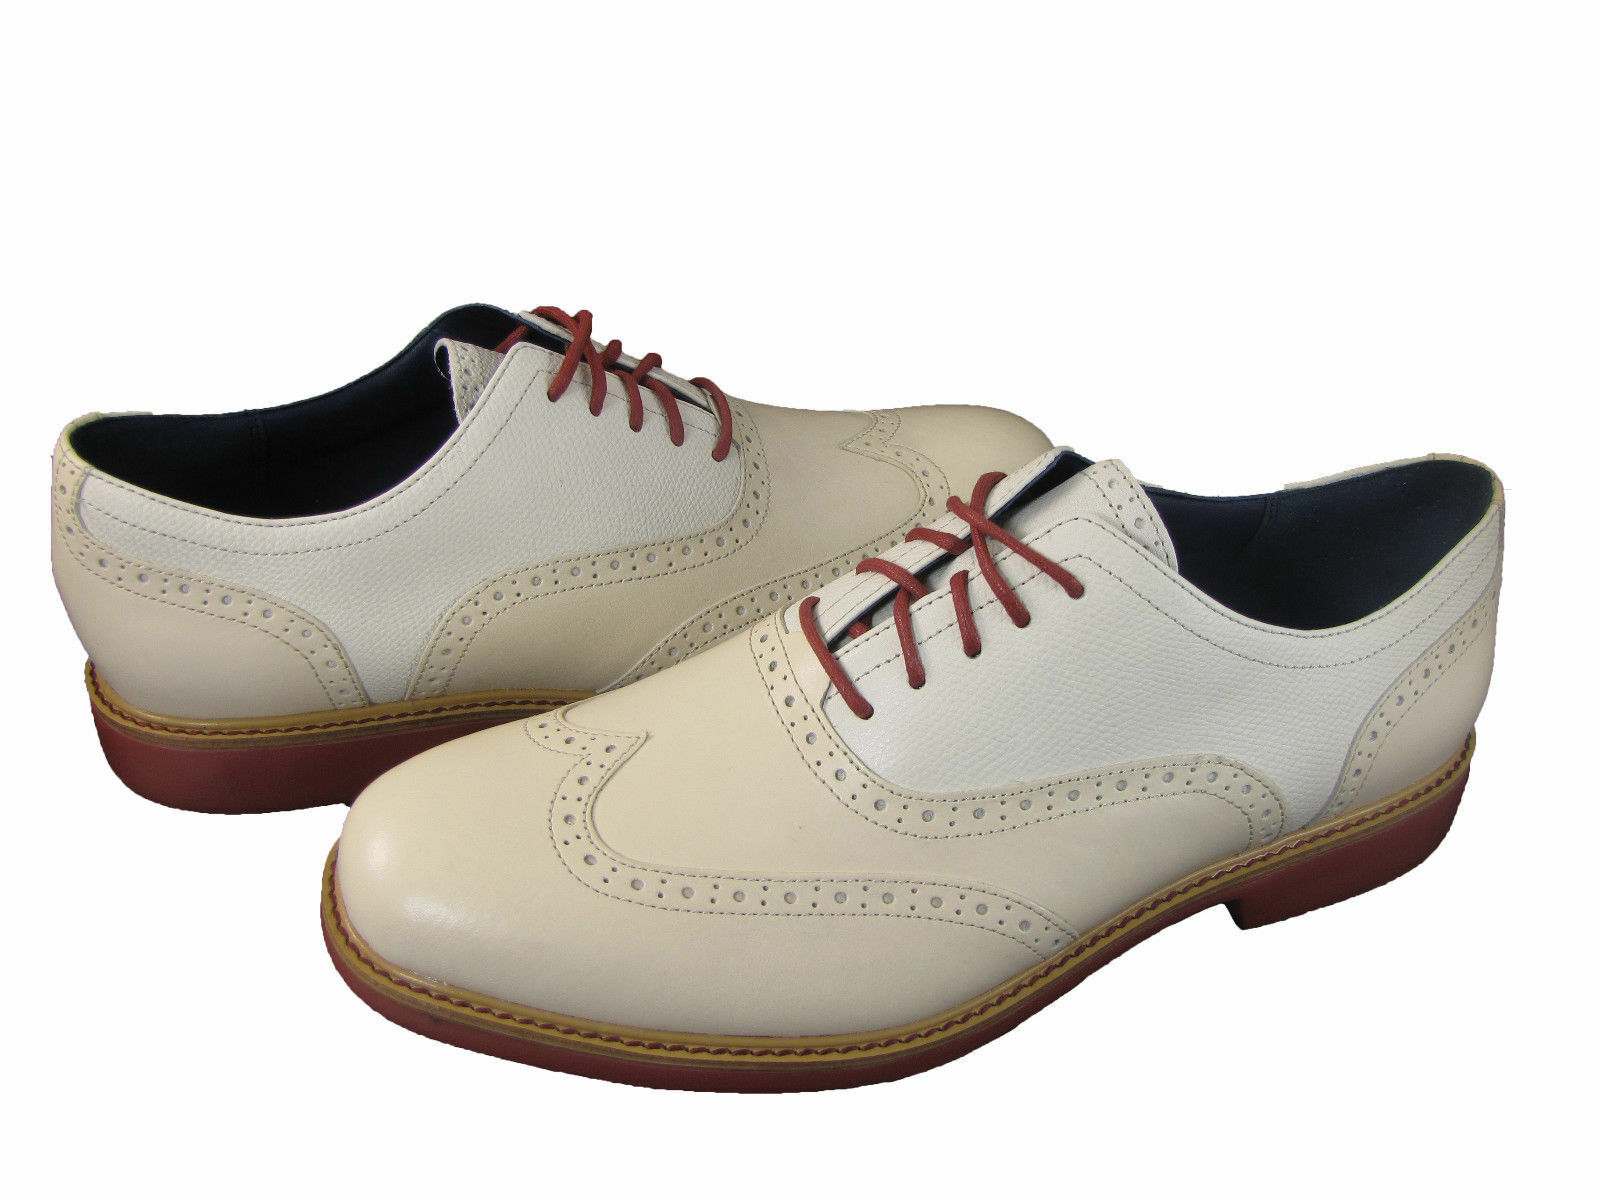 Cole Haan Mens Great Jones Wing Tip White Business Casual Oxford Shoes